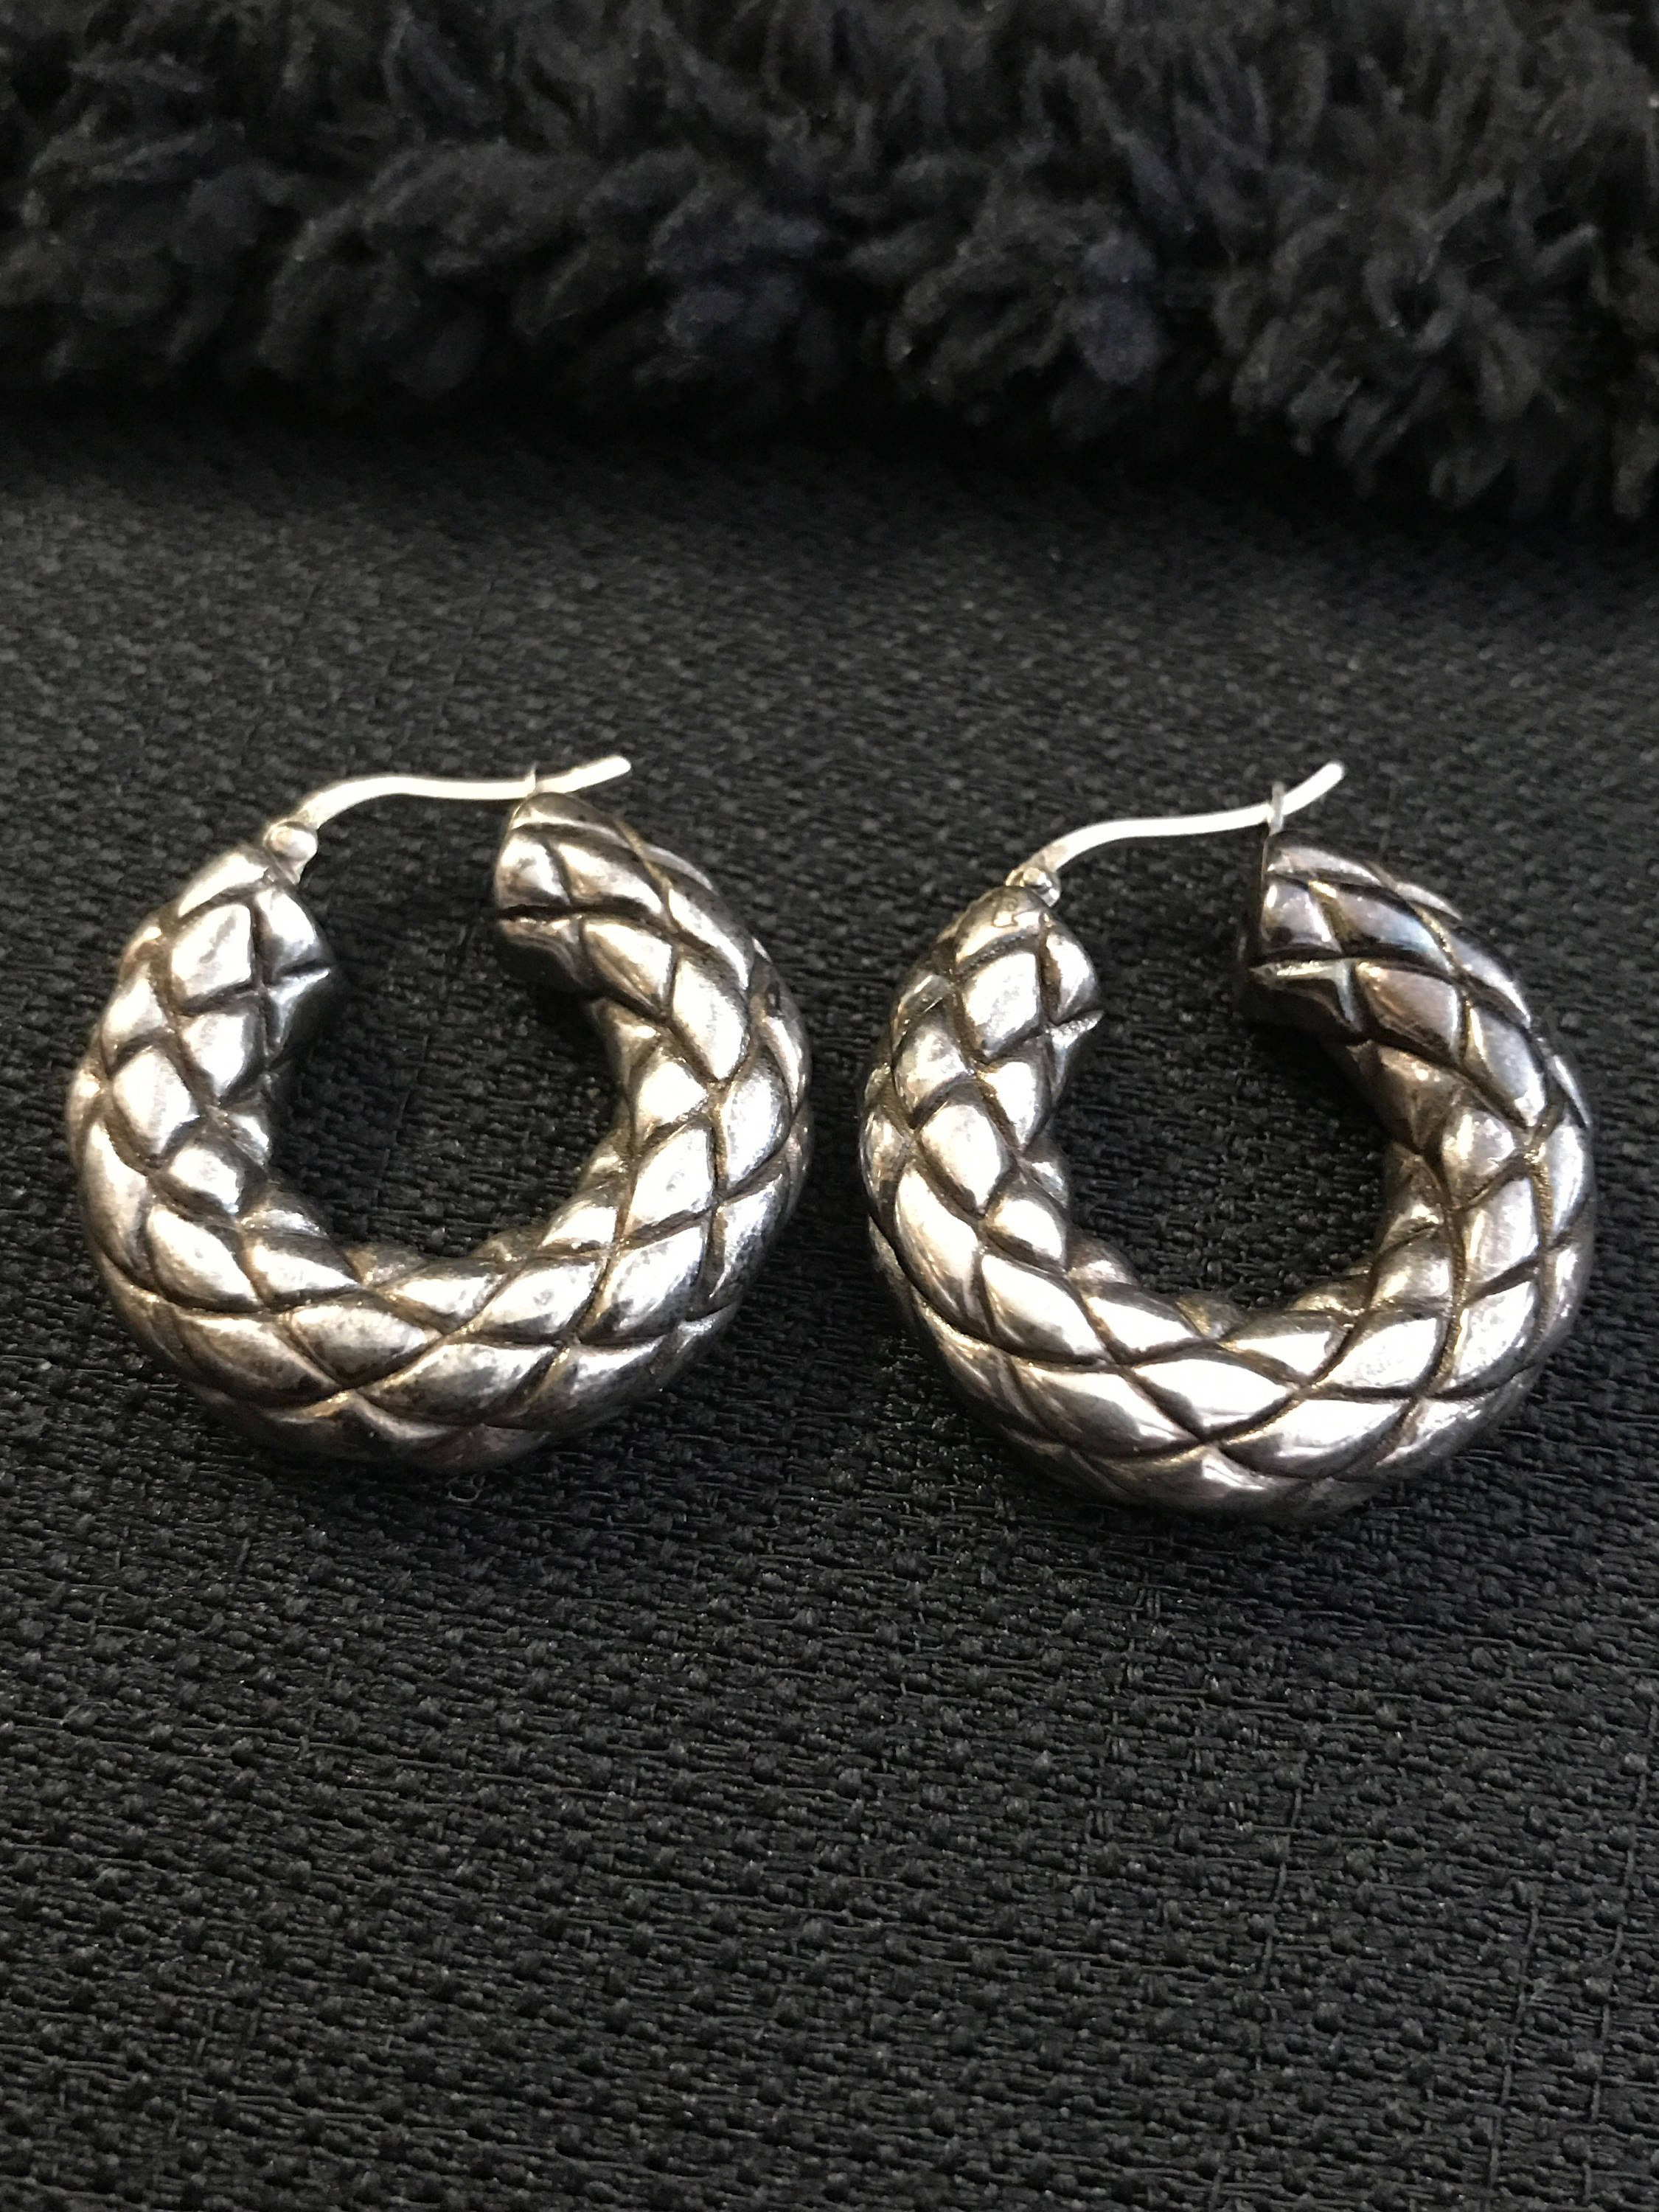 Vintage Textured Diamond Cut Oxidized Sterling Silver Hoops Earrings